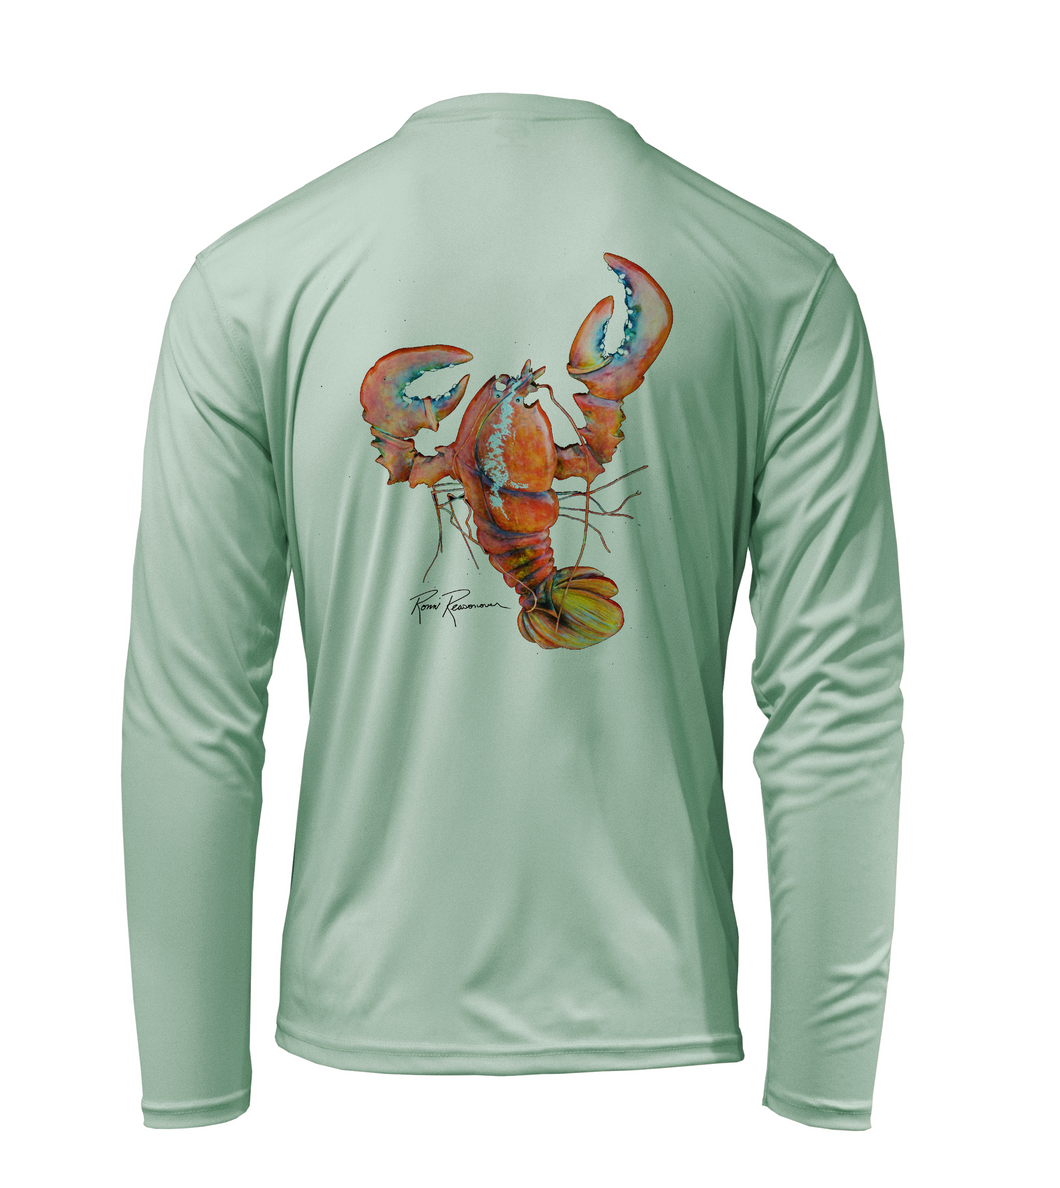 Ronnie Reasonover, The Lobster, Performance Long Sleeve Shirt in Sea Foam Green